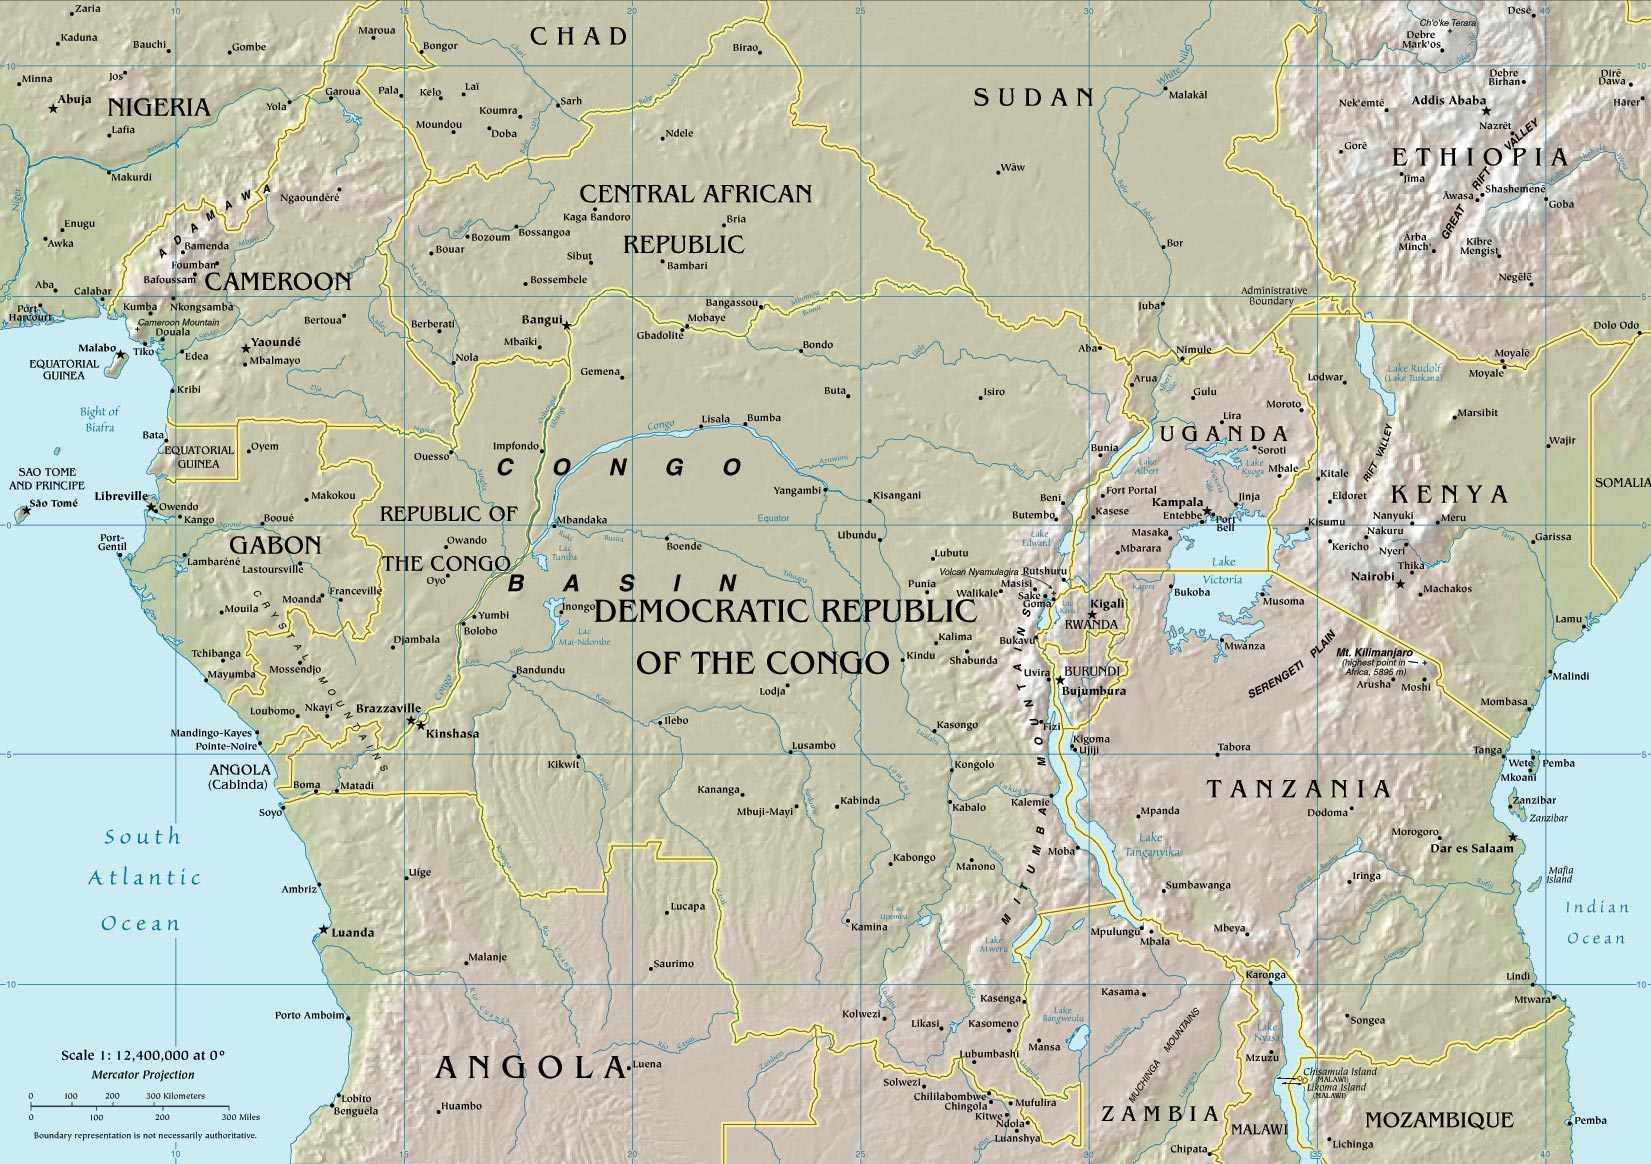 Map Of Africa Lake Victoria.Central Africa Physical Map Lake Victoria Kenya